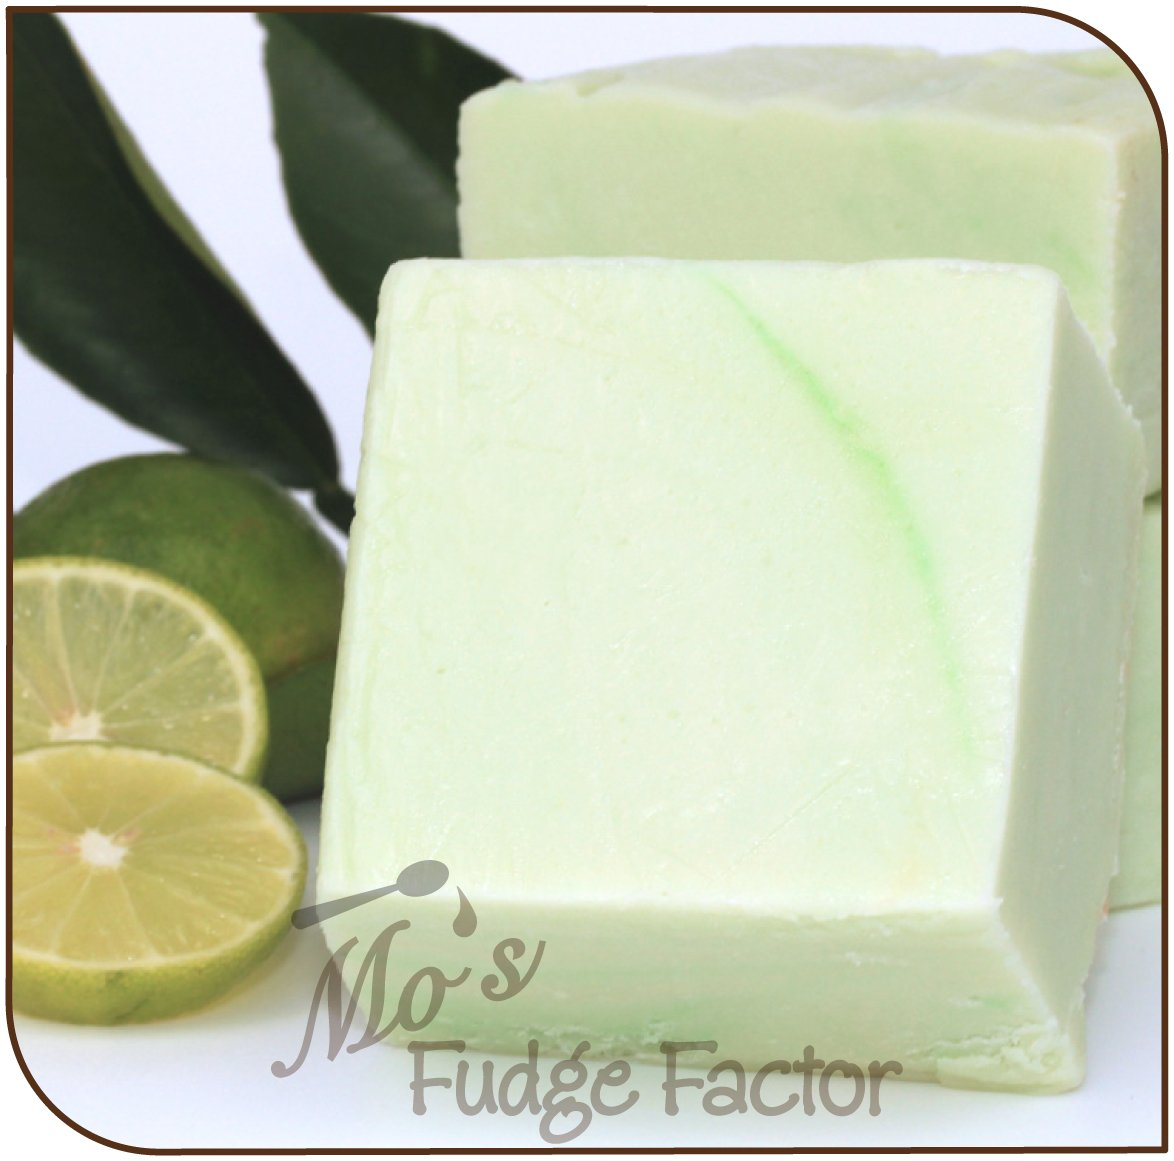 Mo's Fudge Factor, Key Lime Fudge, 2 Pounds